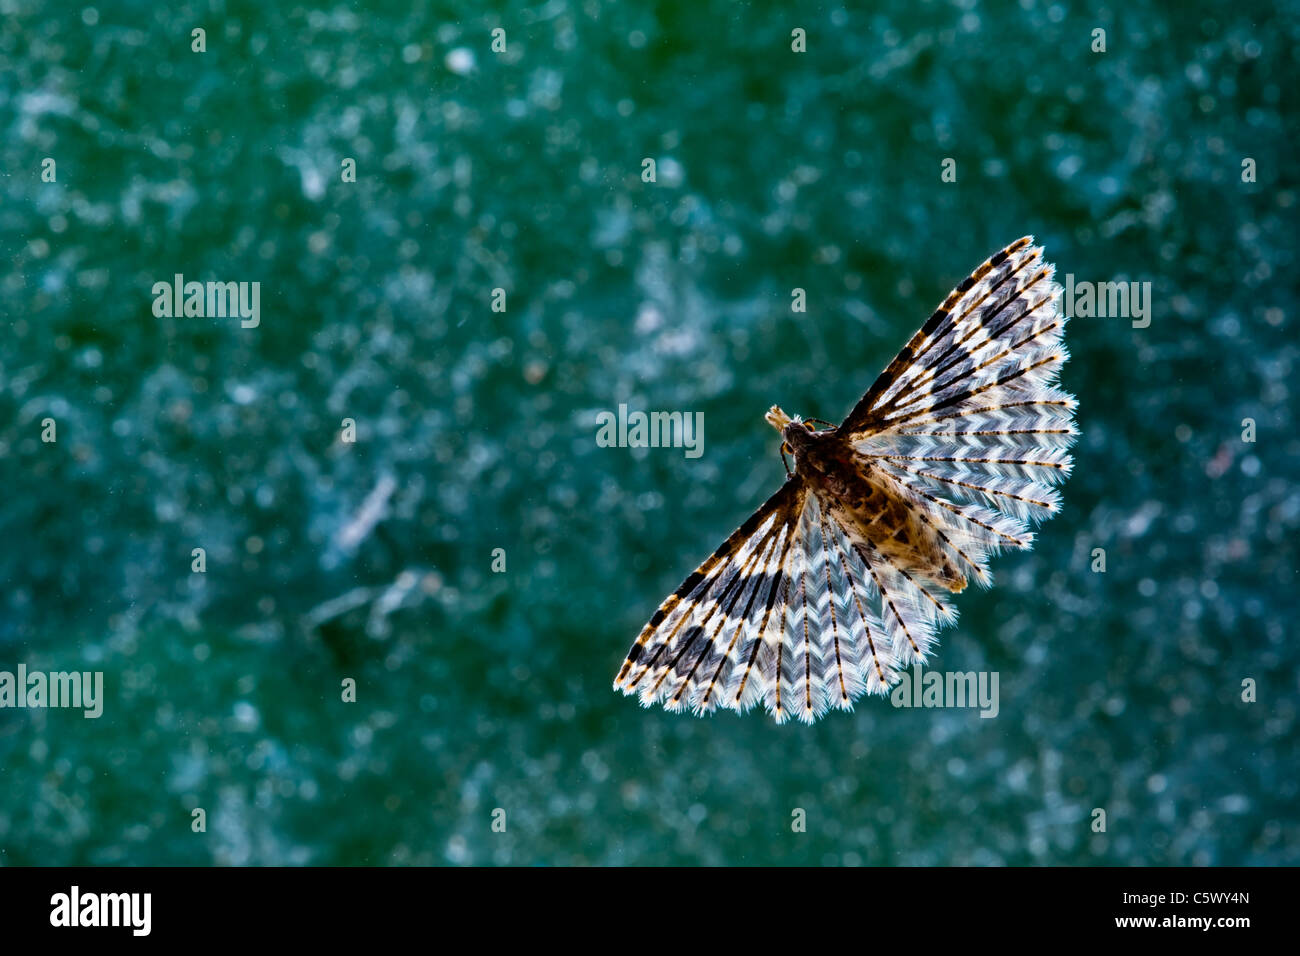 Many Plumed Moth resting on a window - Stock Image